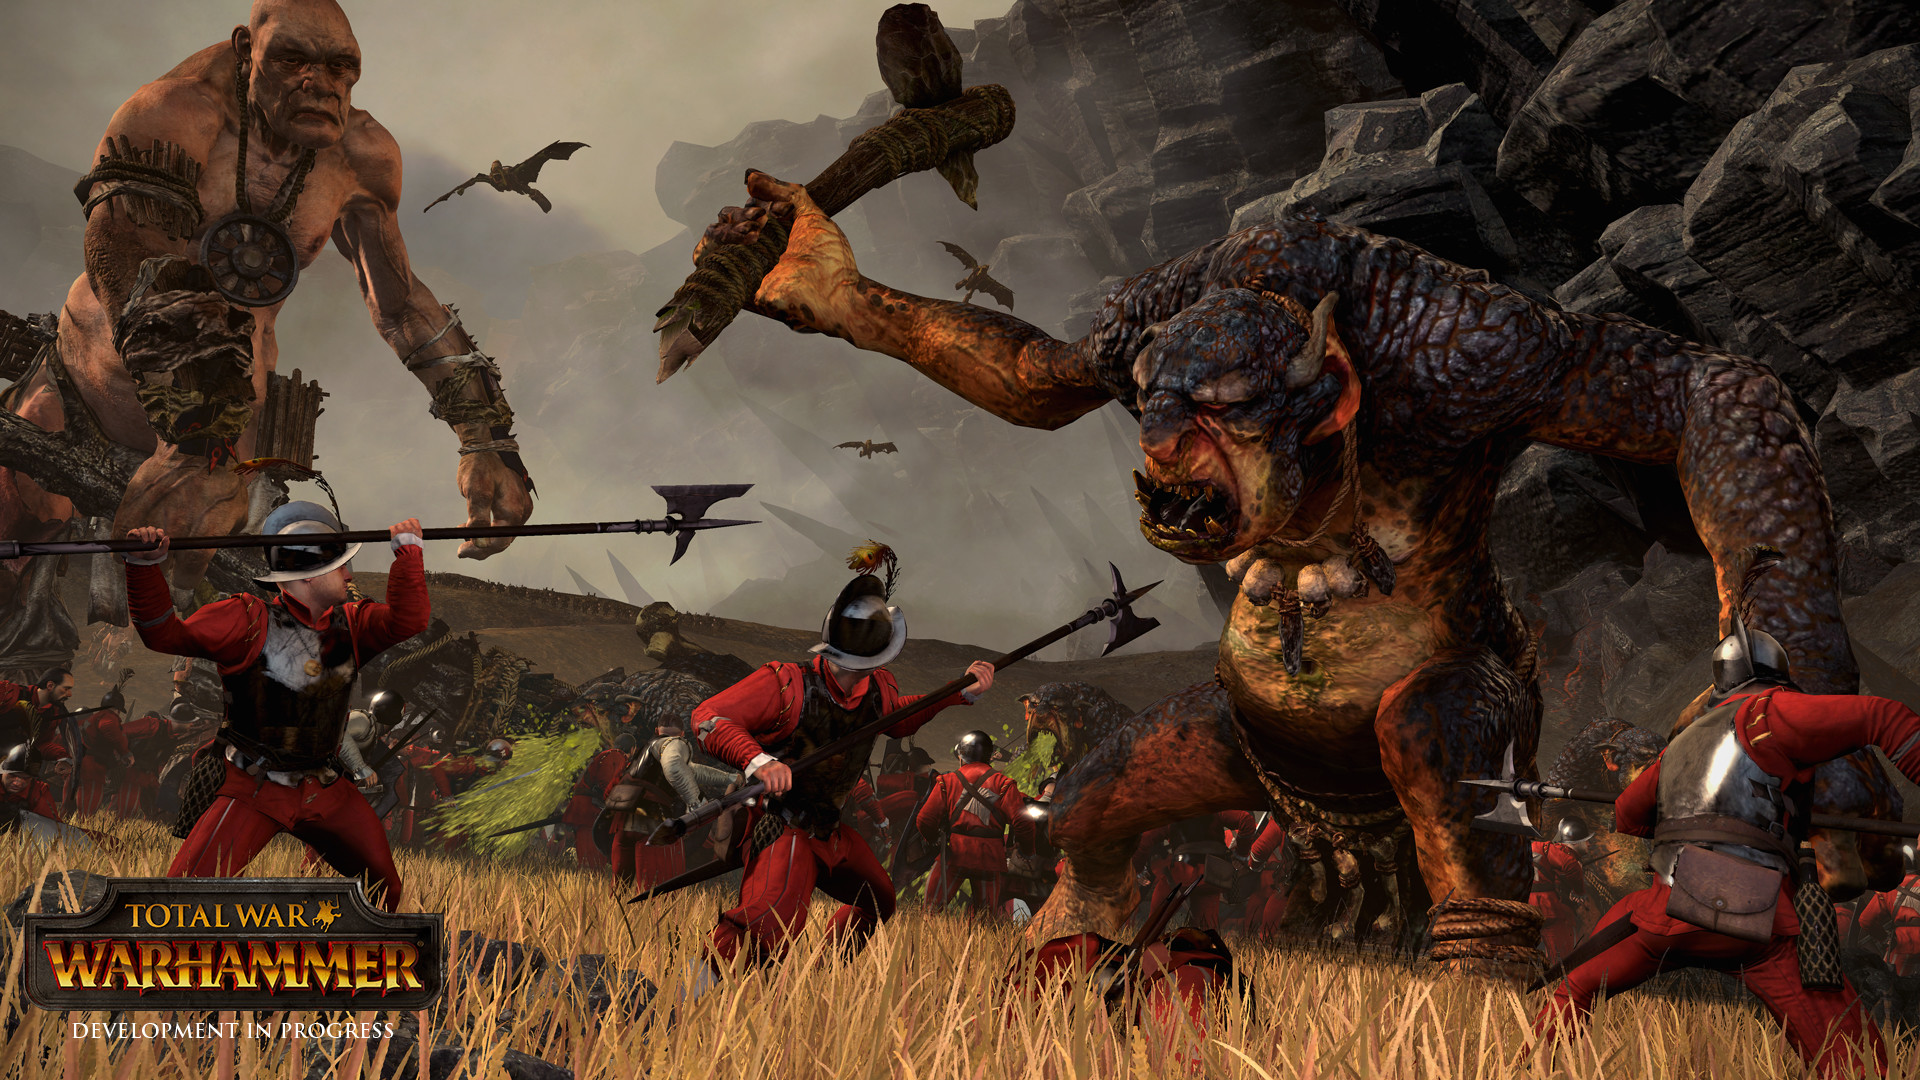 Feral Interactive today announced it is bringing Total War: WARHAMMER